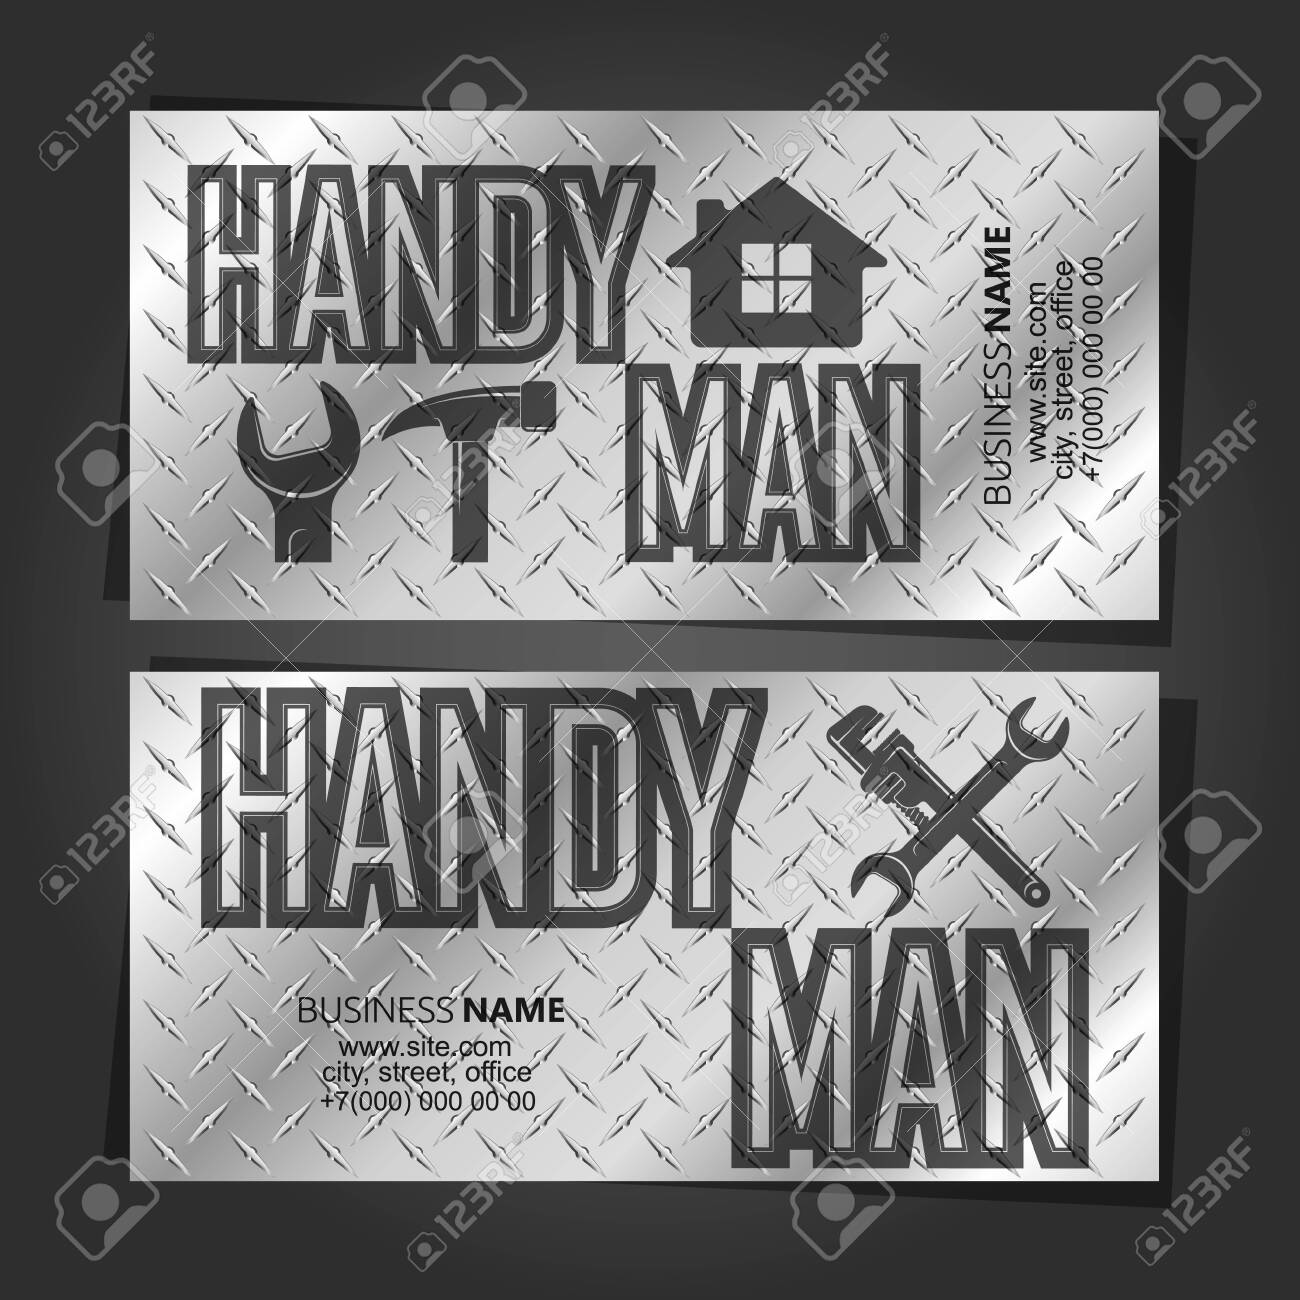 Handyman repair and service business card concept metal - 136785186